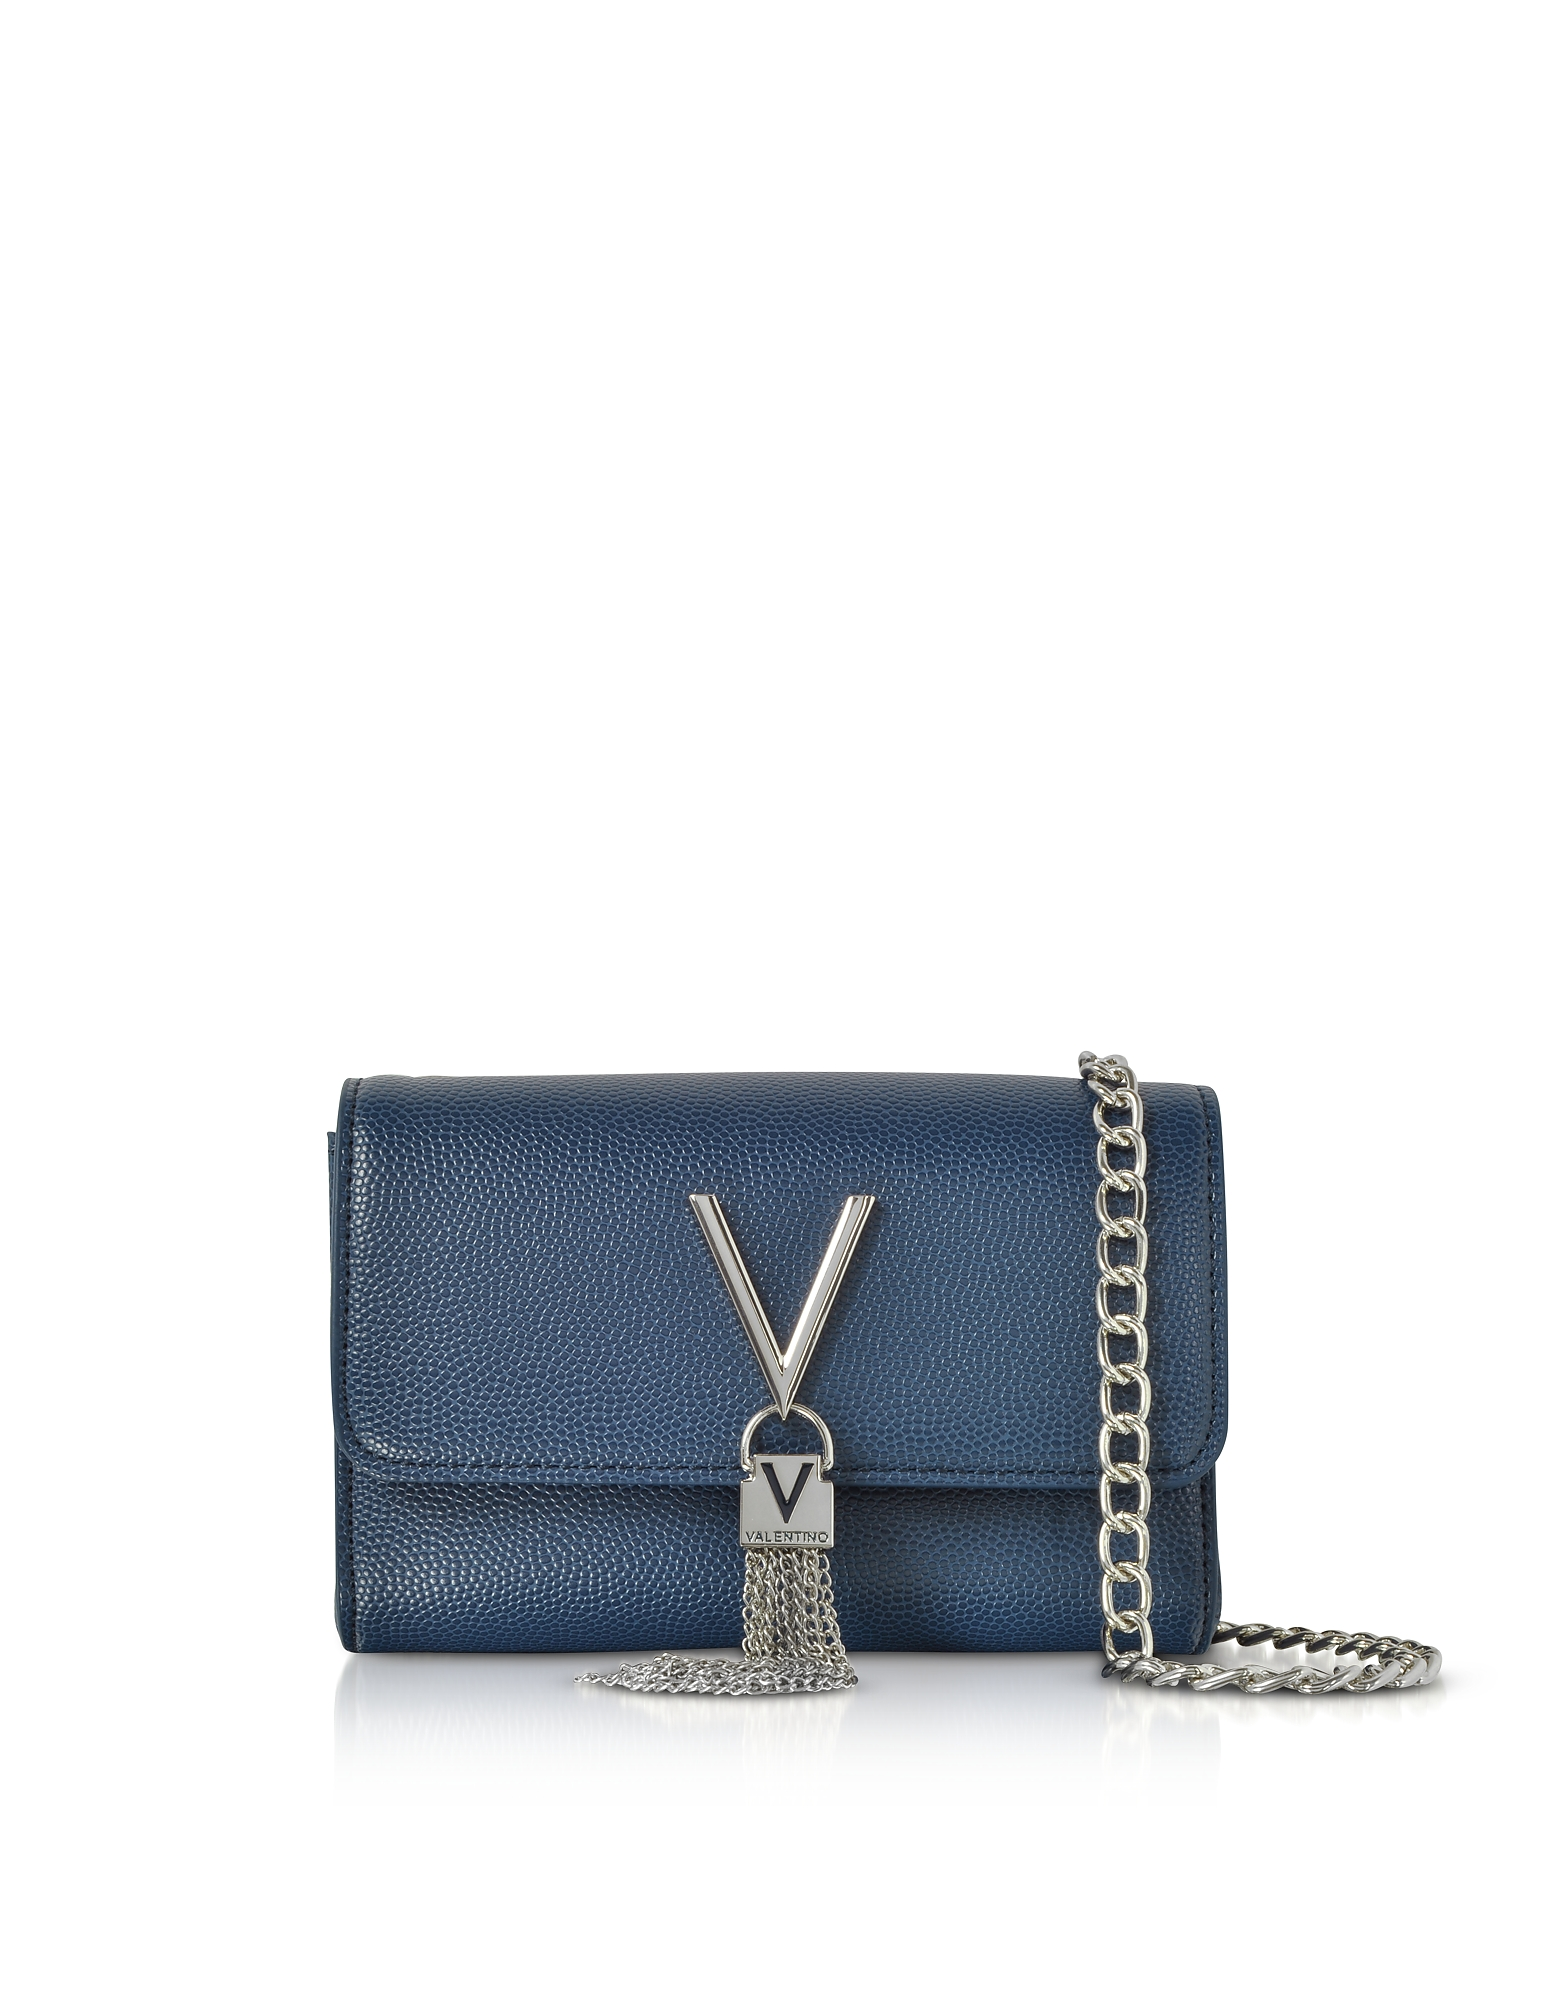 Blue Lizard Embossed Eco Leather Divina Mini Shoulder Bag